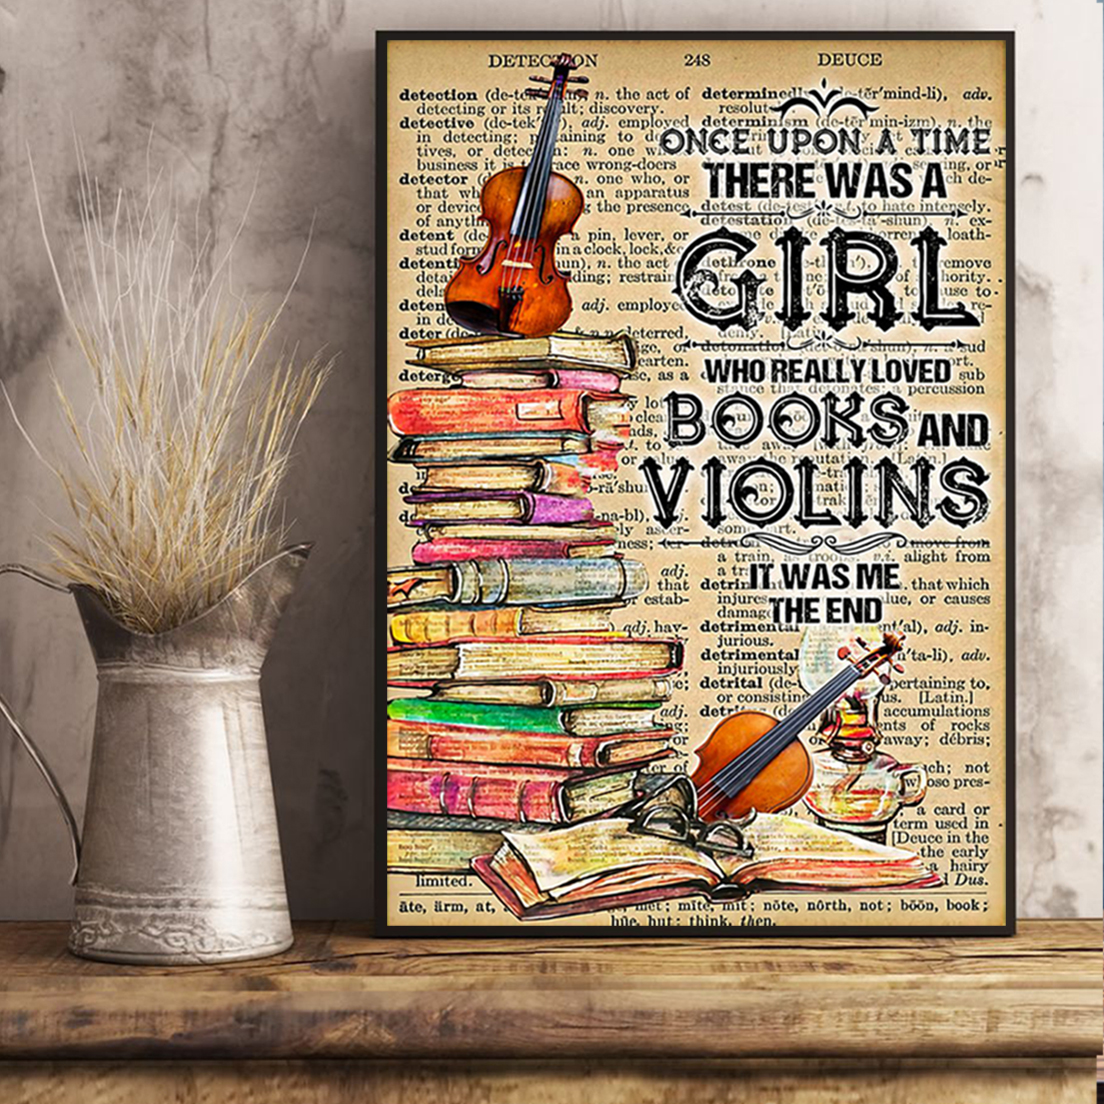 Once upon a time there was a girl who really loved books and violins poster A1